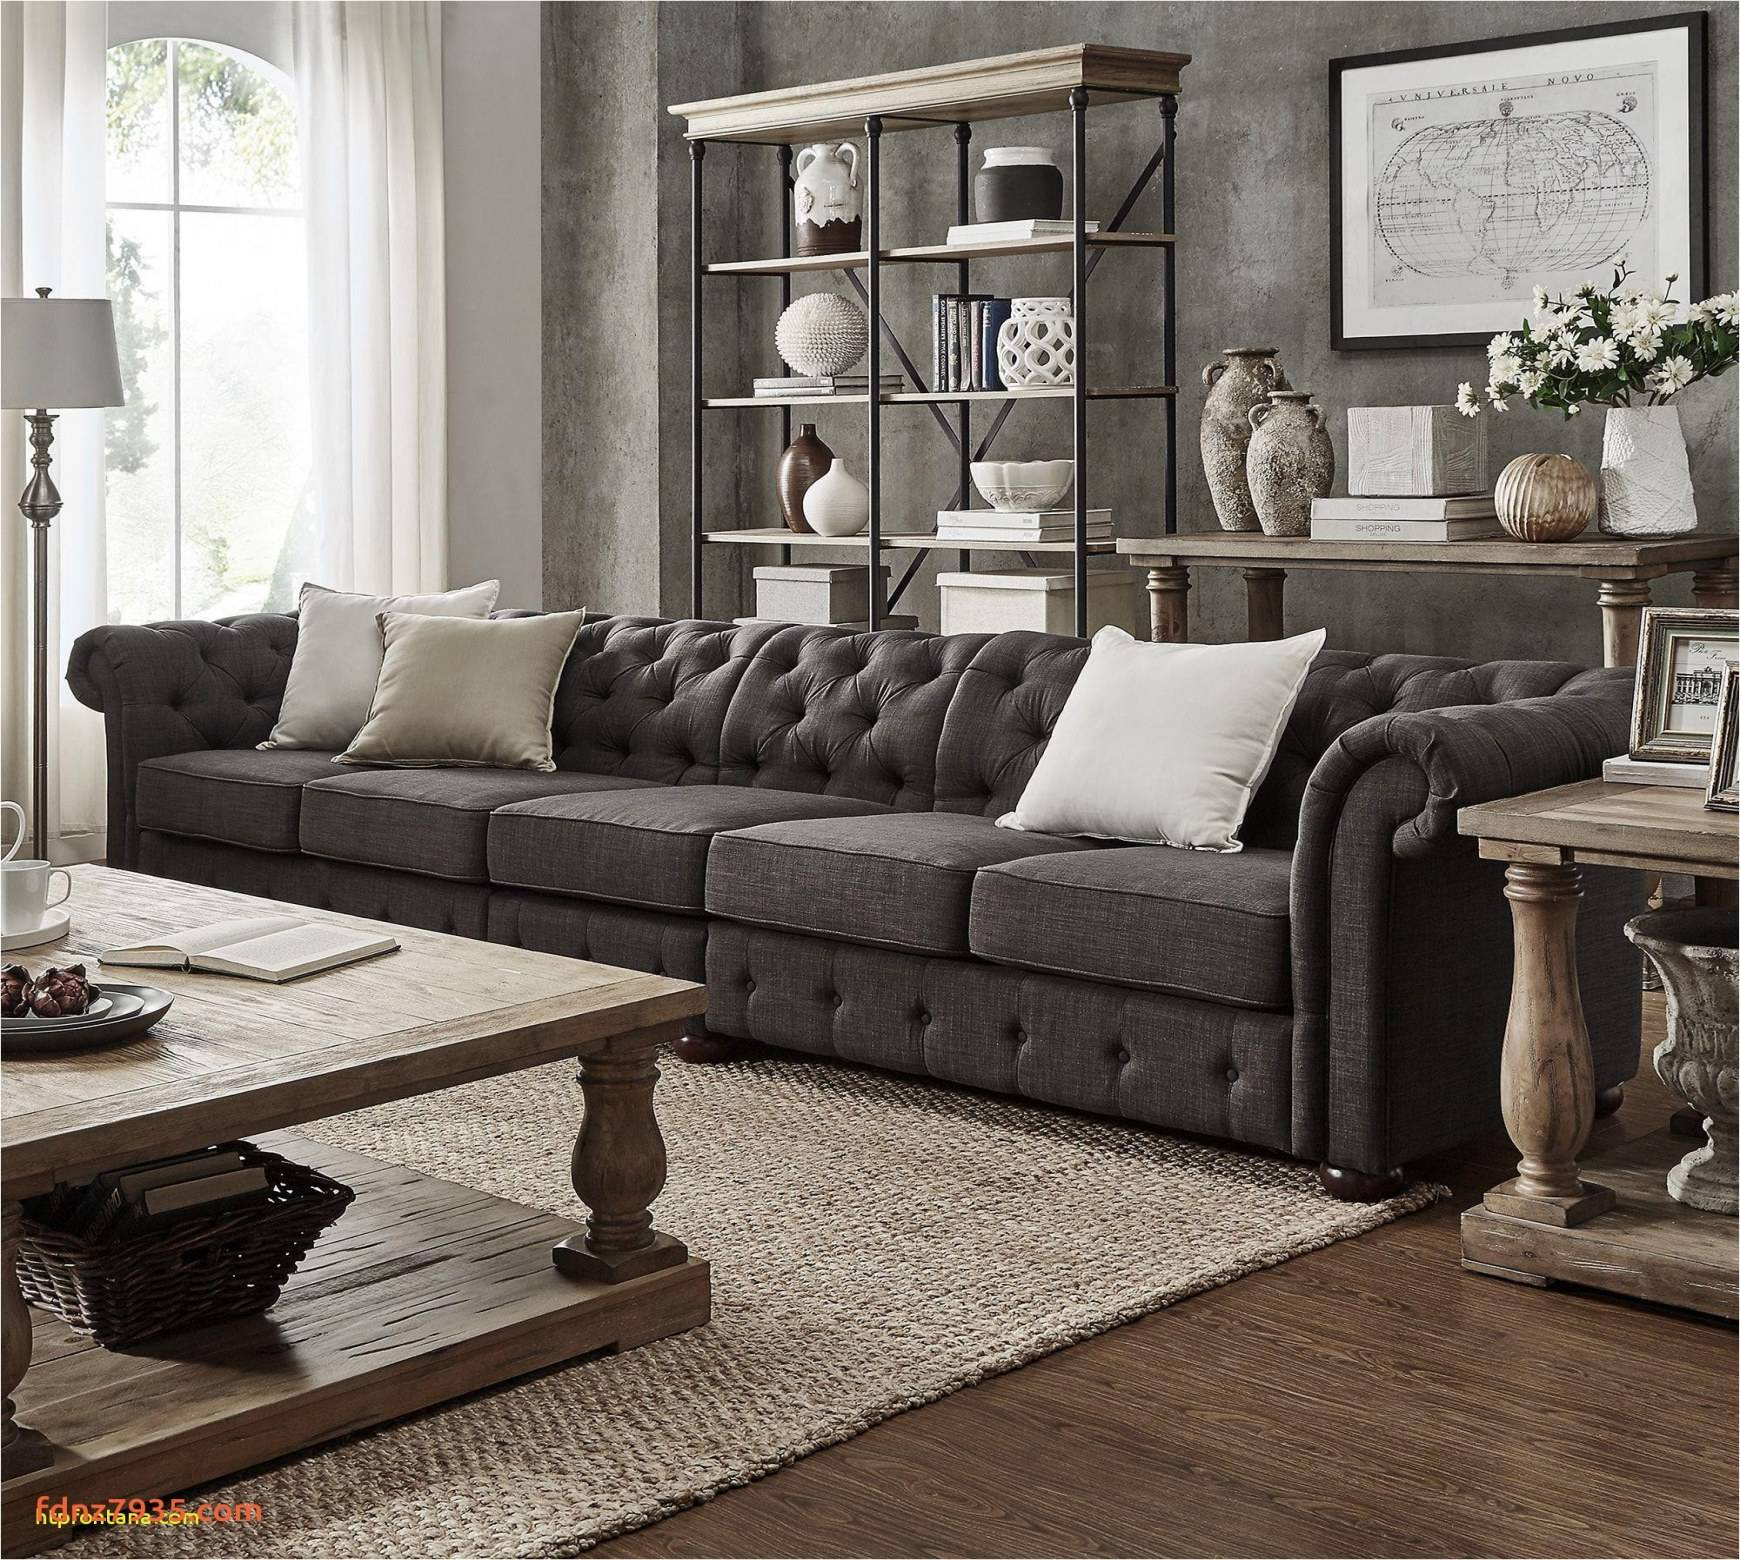 living room ideas grey grey sofa living room ideas fresh sofa design of living room ideas grey